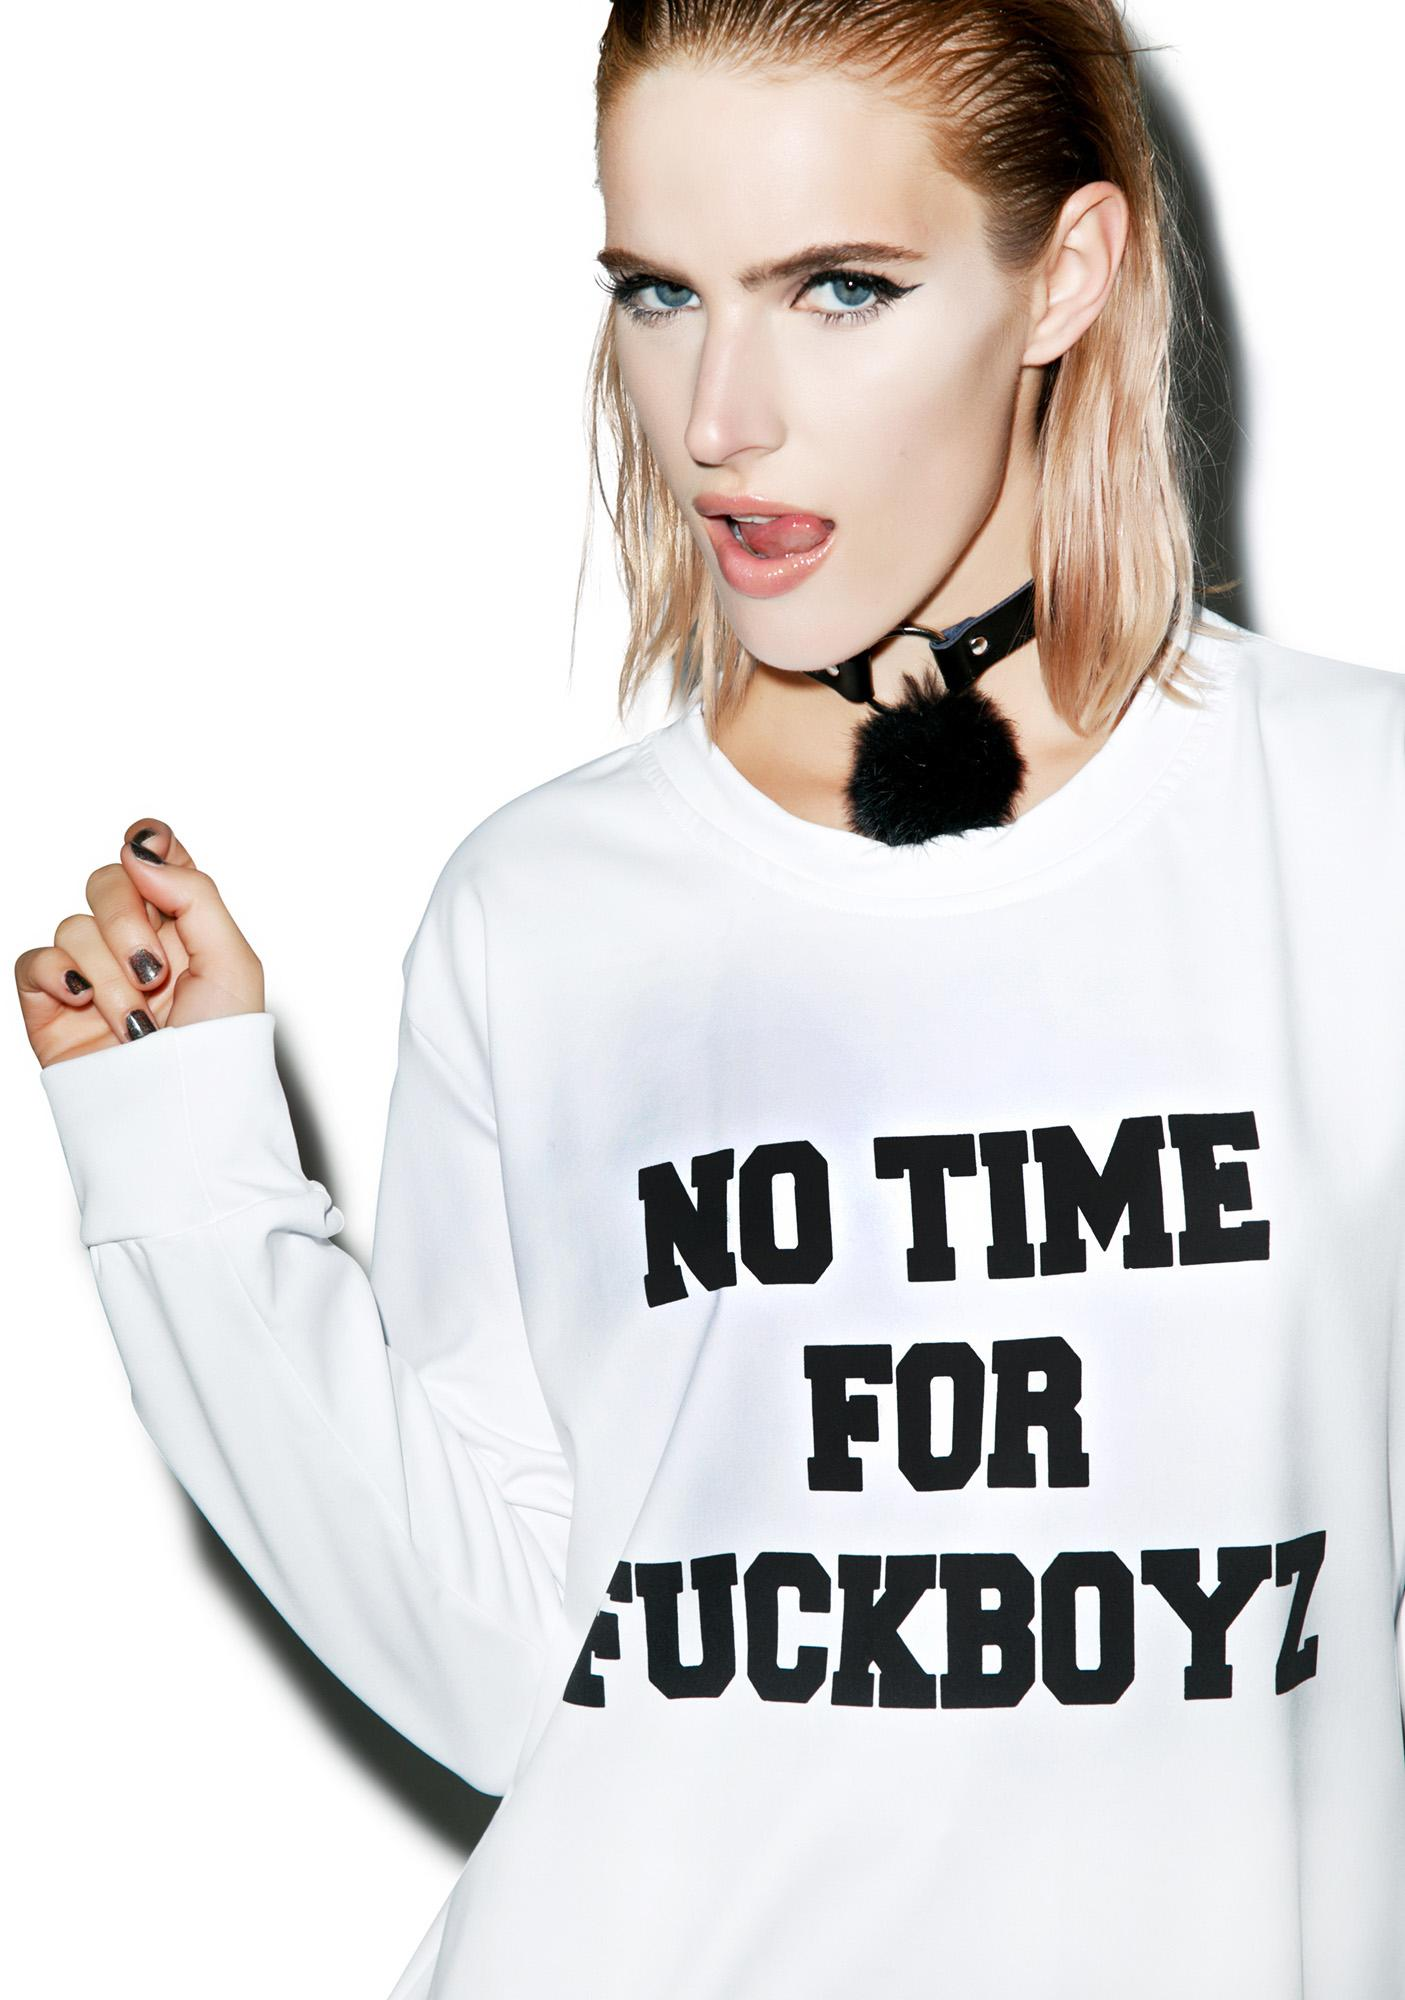 O Mighty No Time For Fuckboyz Sweatshirt